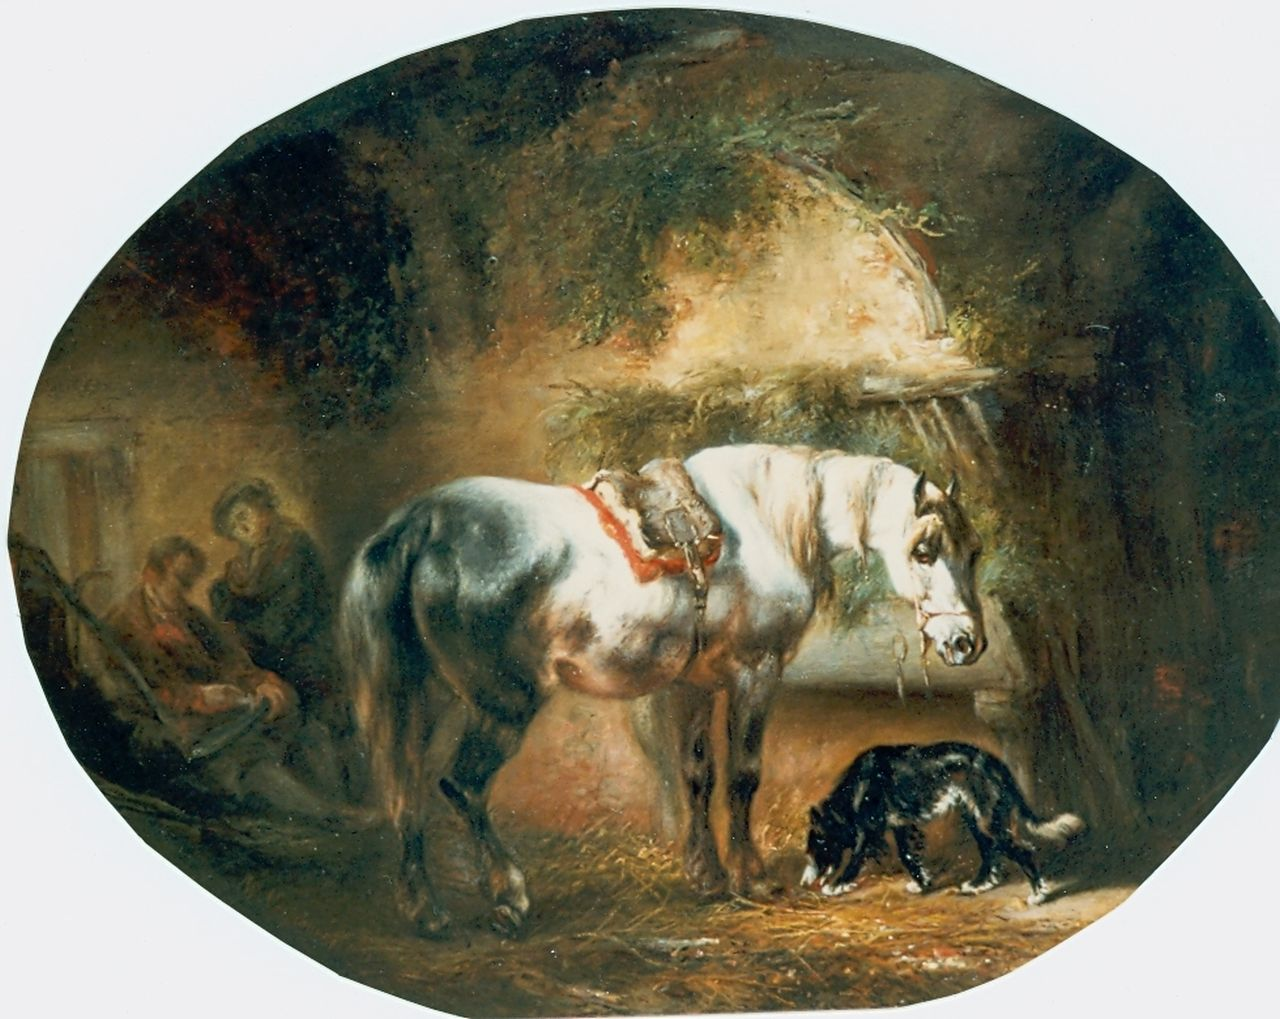 Verschuur W.  | Wouterus Verschuur, Stable mates, oil on panel 30.6 x 39.0 cm, signed l.l. and dated 1845